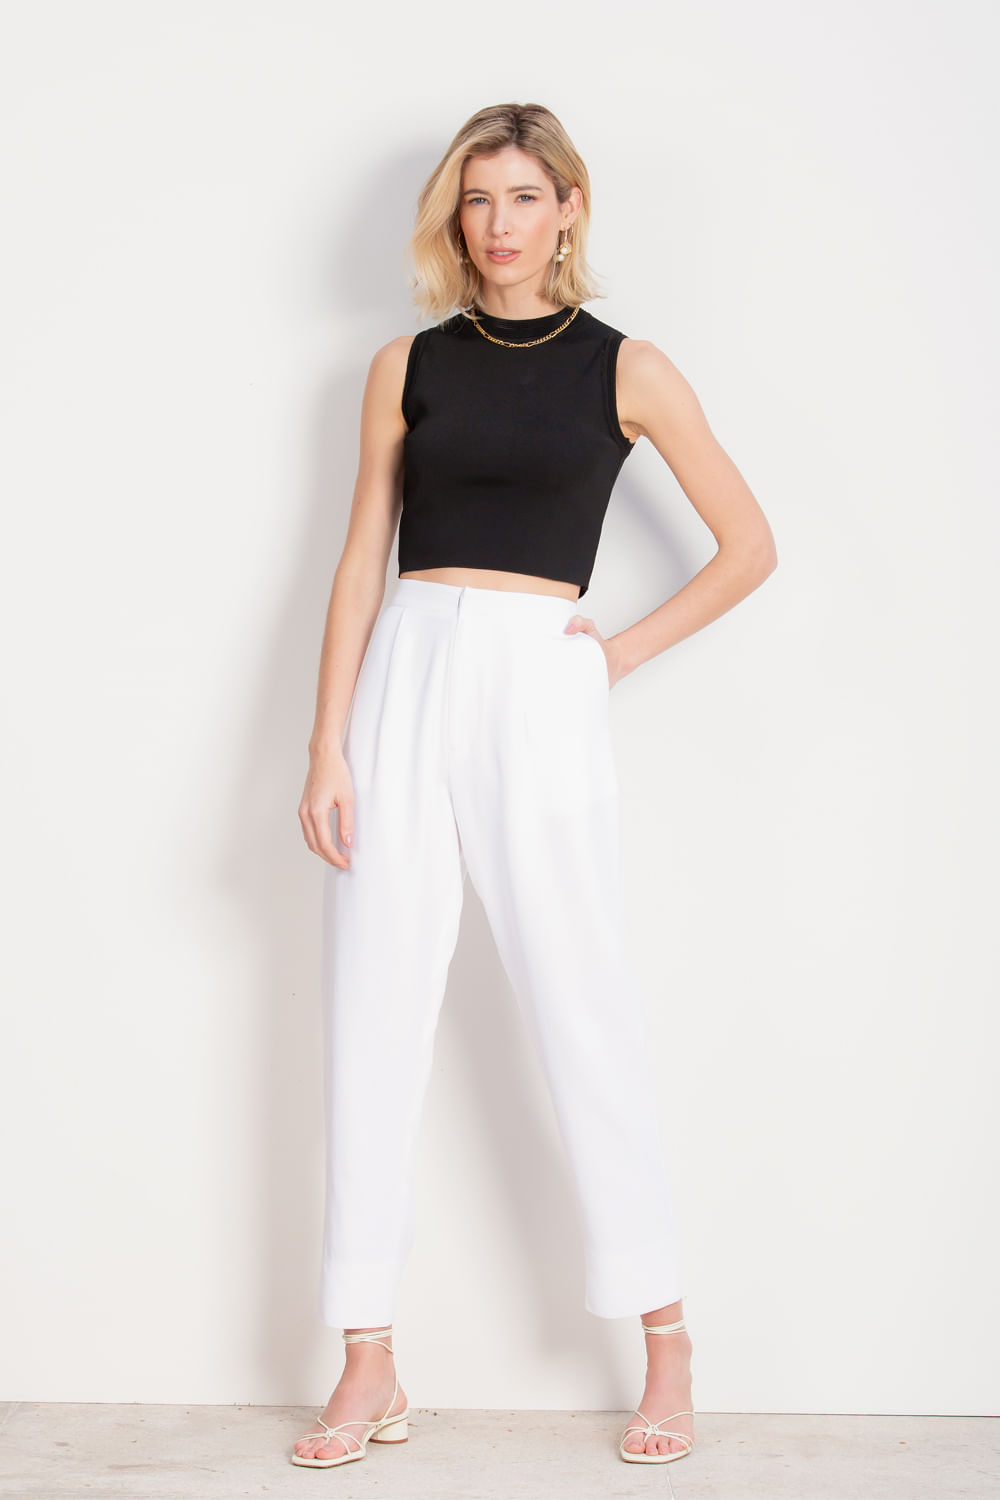 Cropped-Isis-Ref-6212